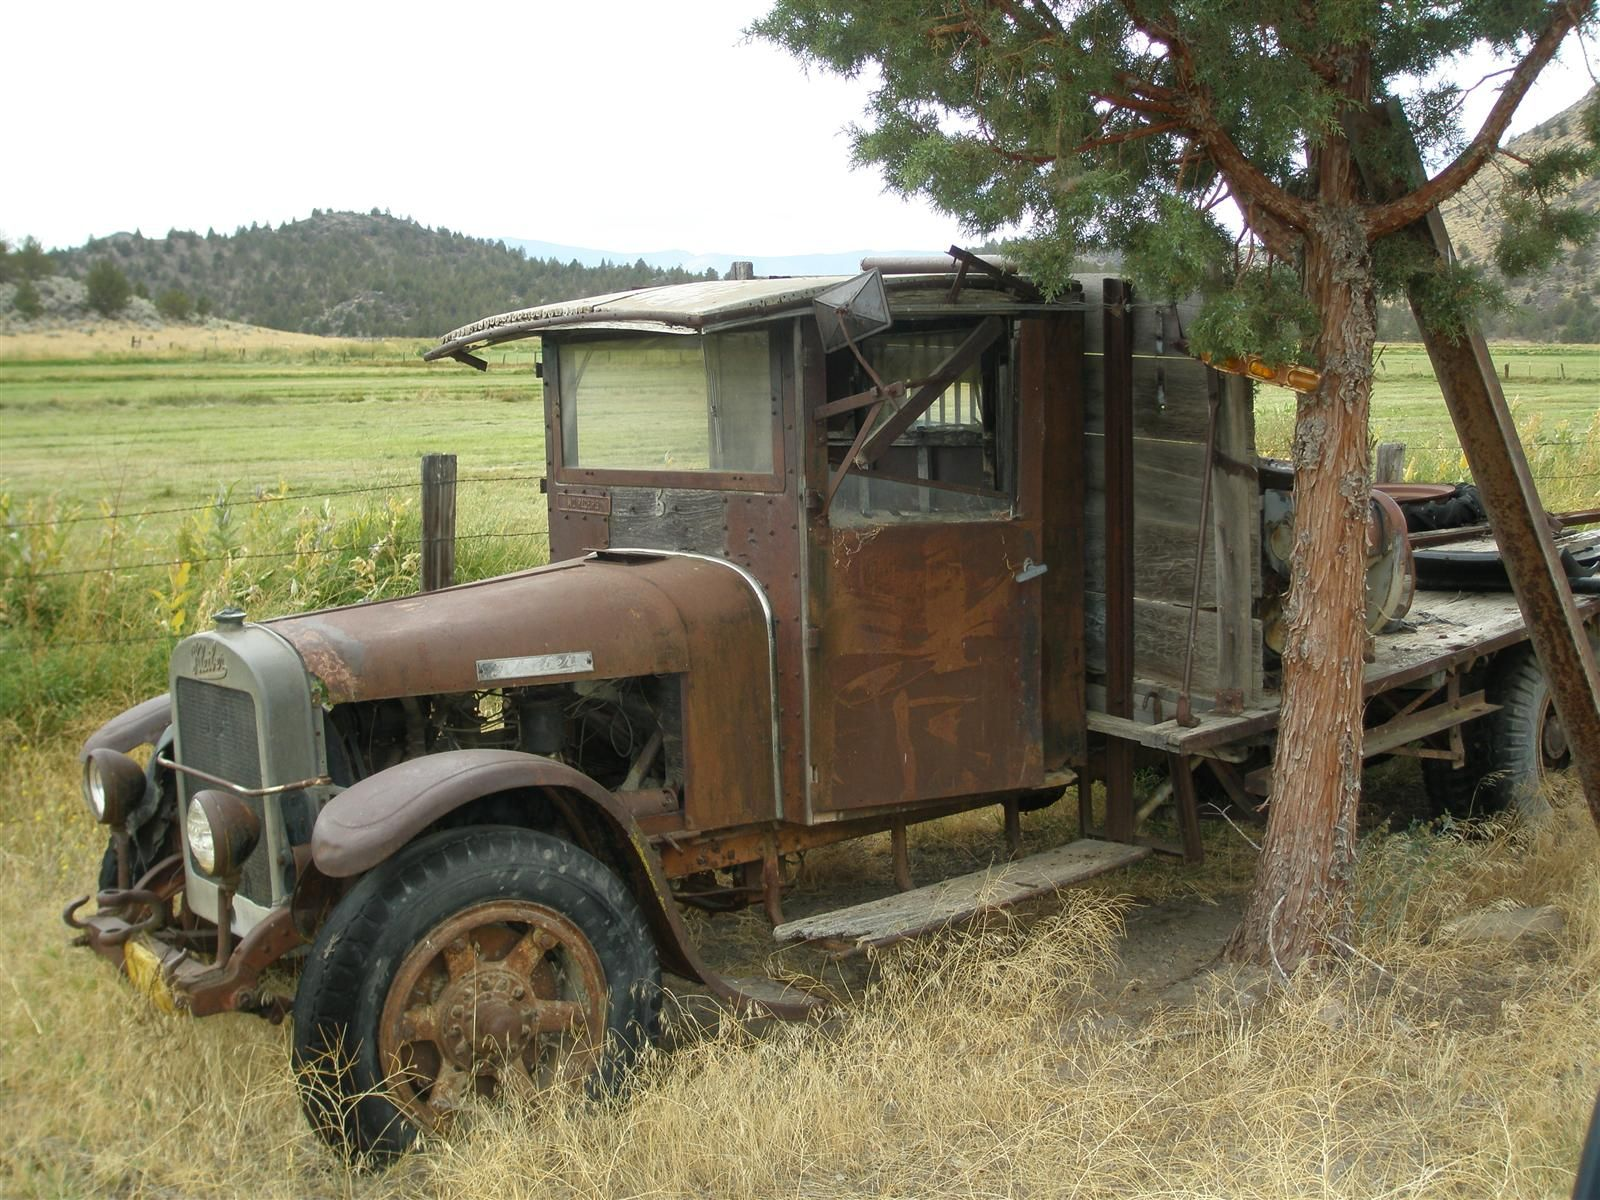 I saw this old truck parked in a field off E. Louie Road near ...